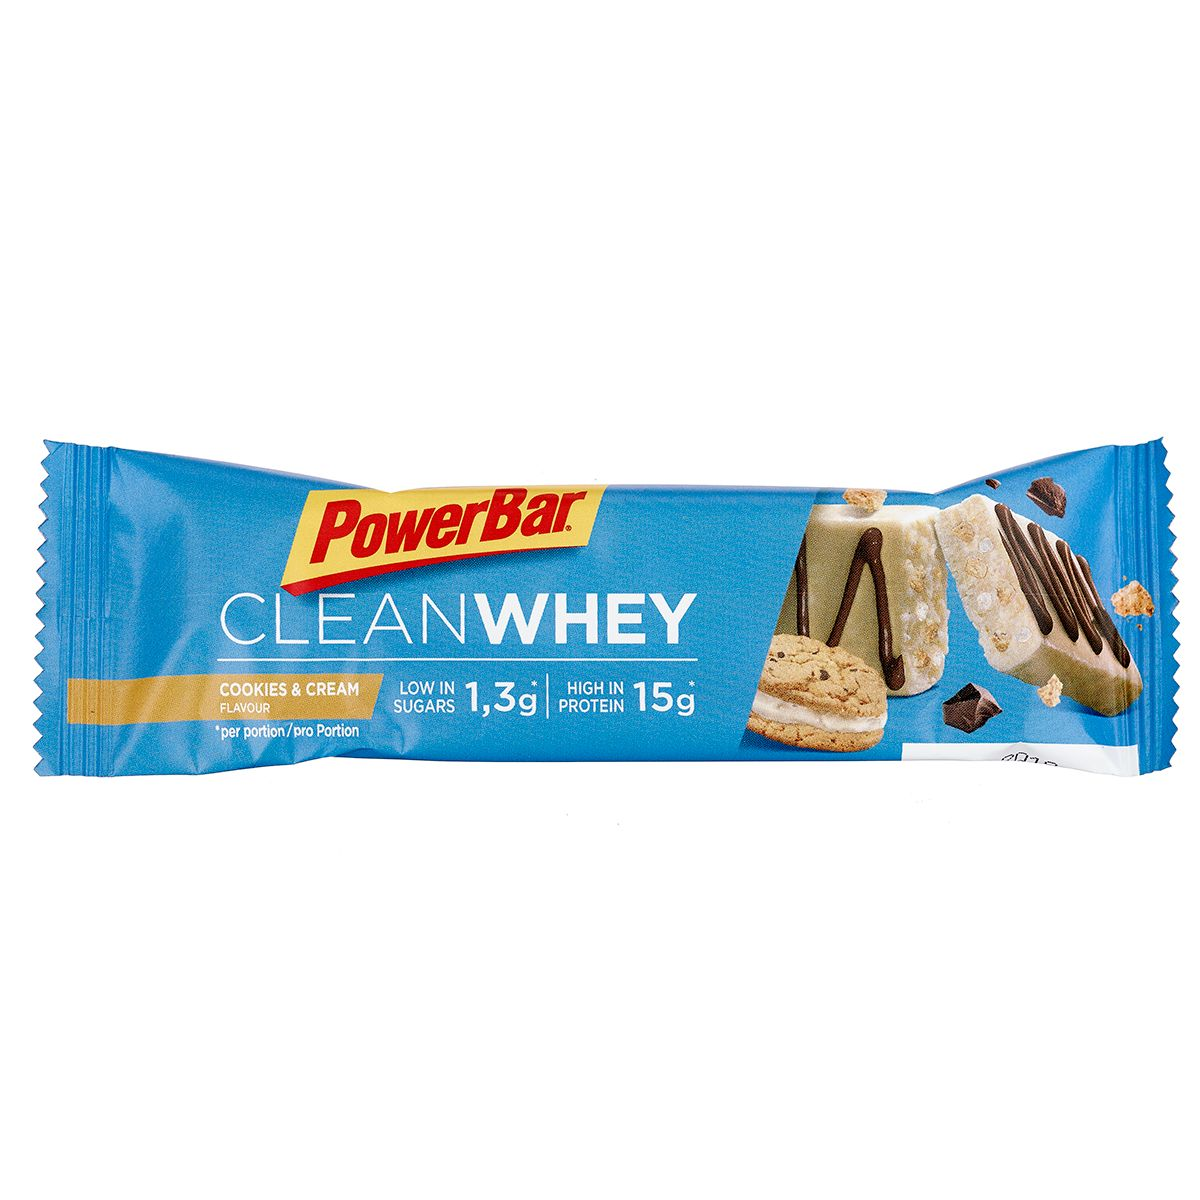 Clean Whey protein bar